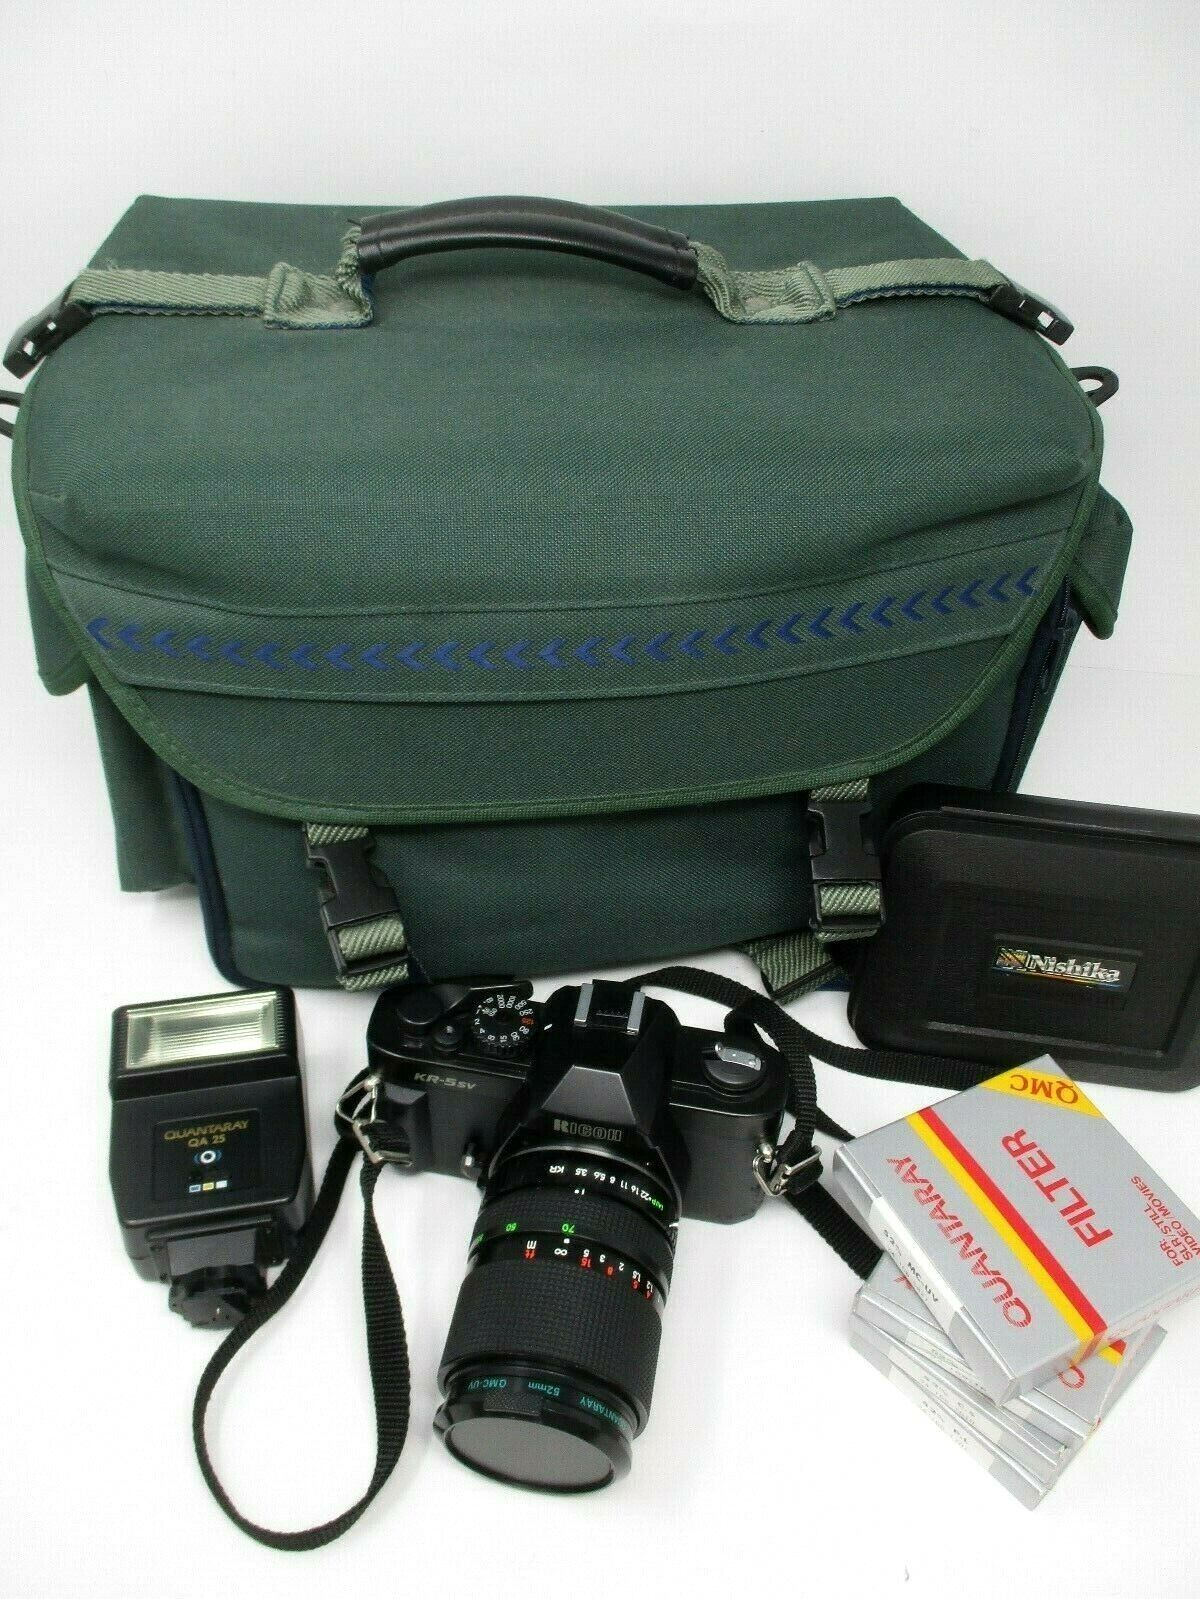 Ricoh KR-5sv 35mm SLR Camera Bundle With 35-70mm Lens Accessories Case